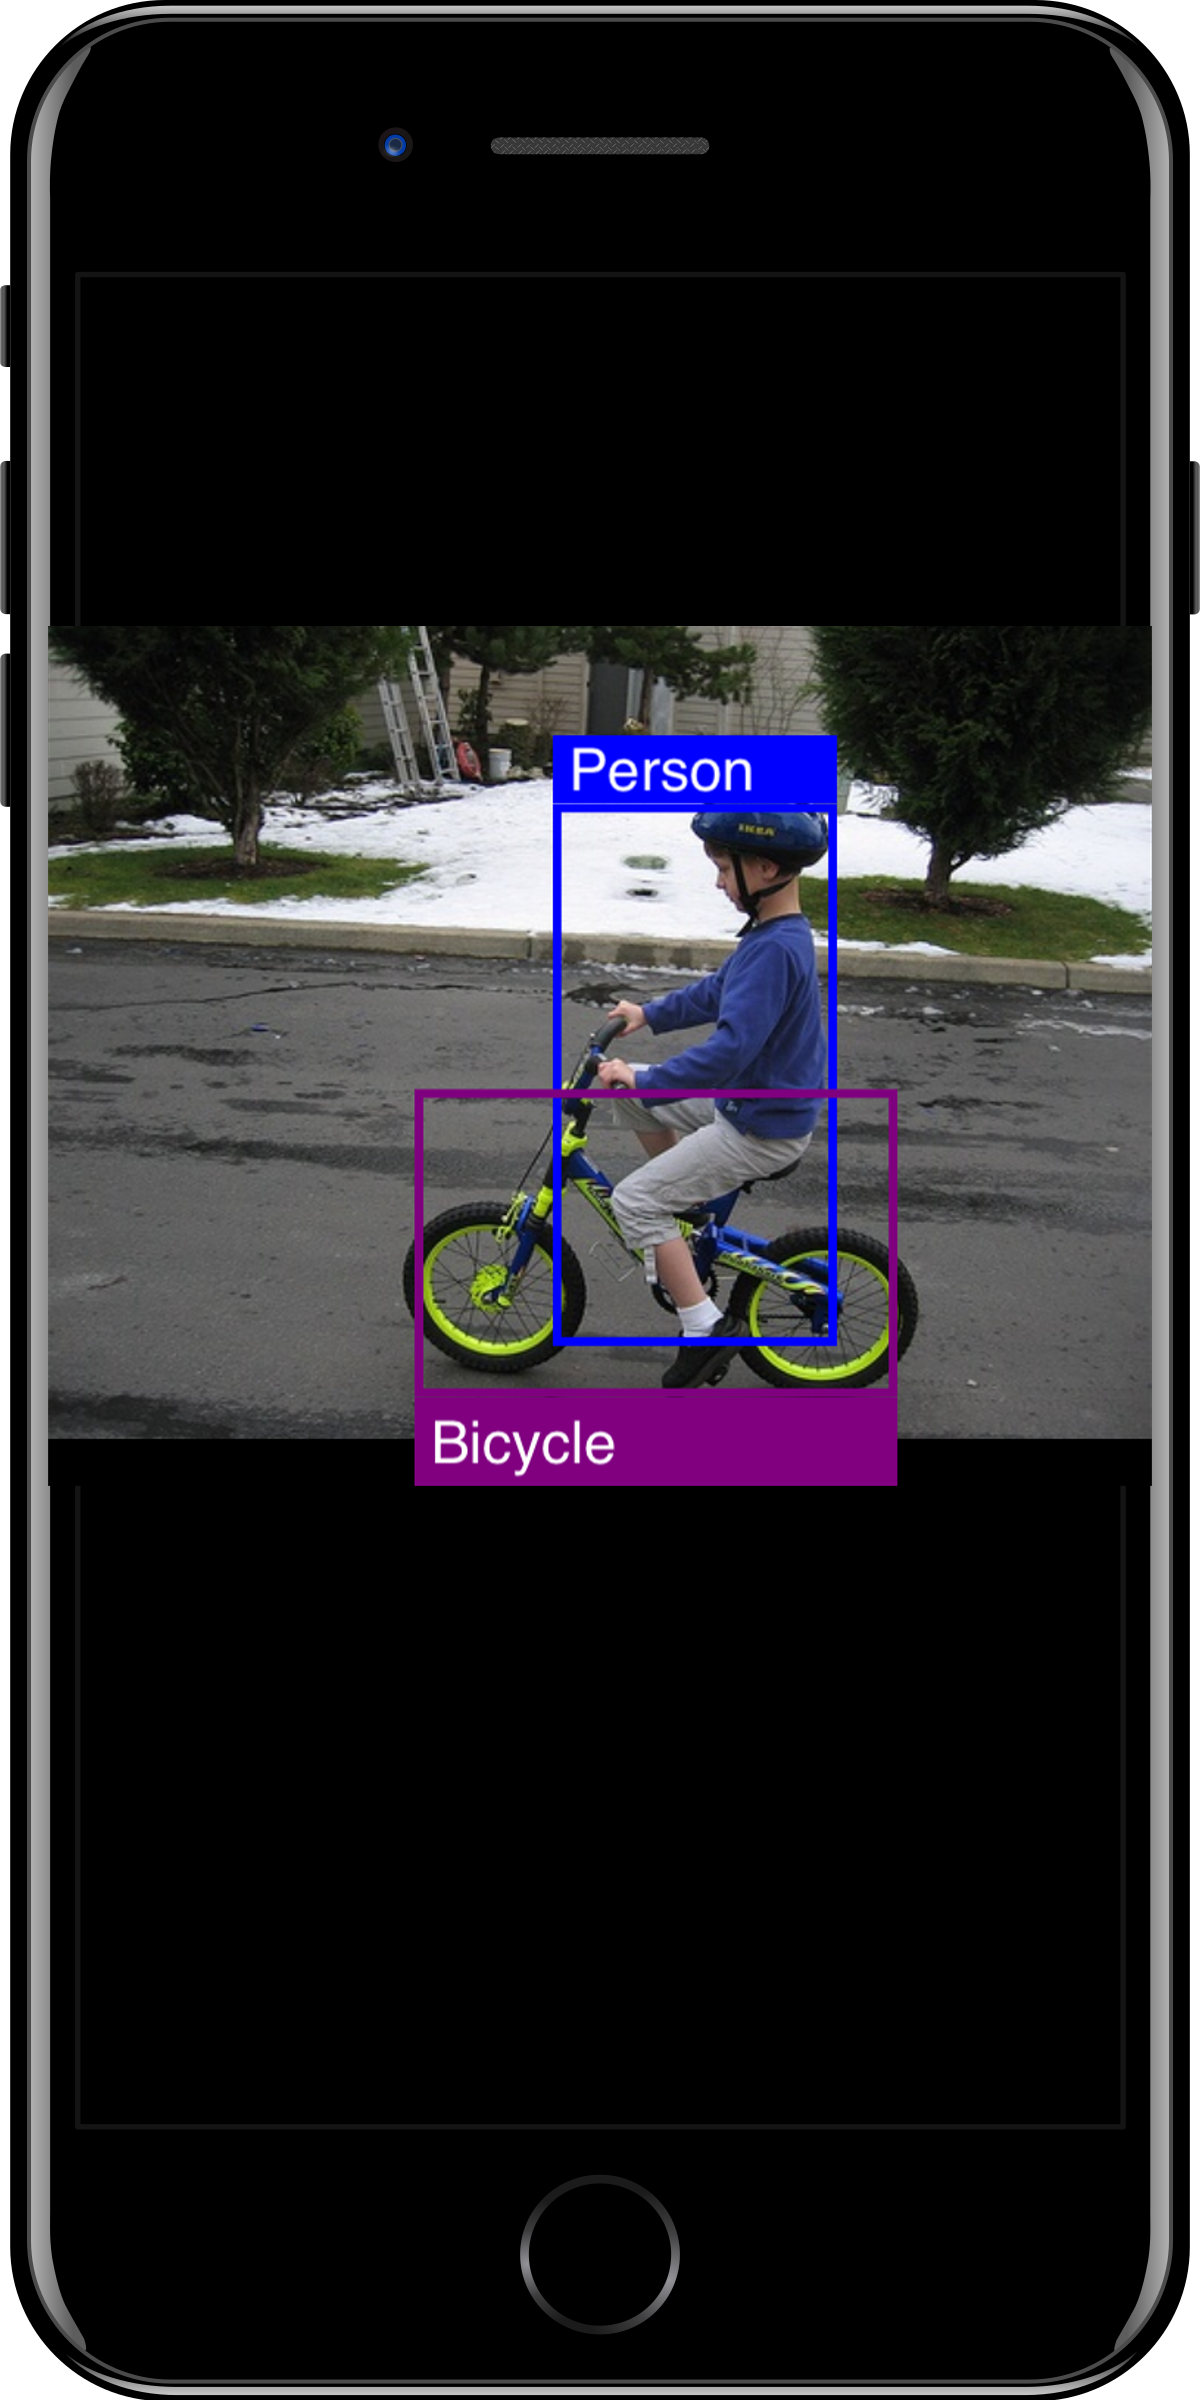 personbicycle_iphone.PNG